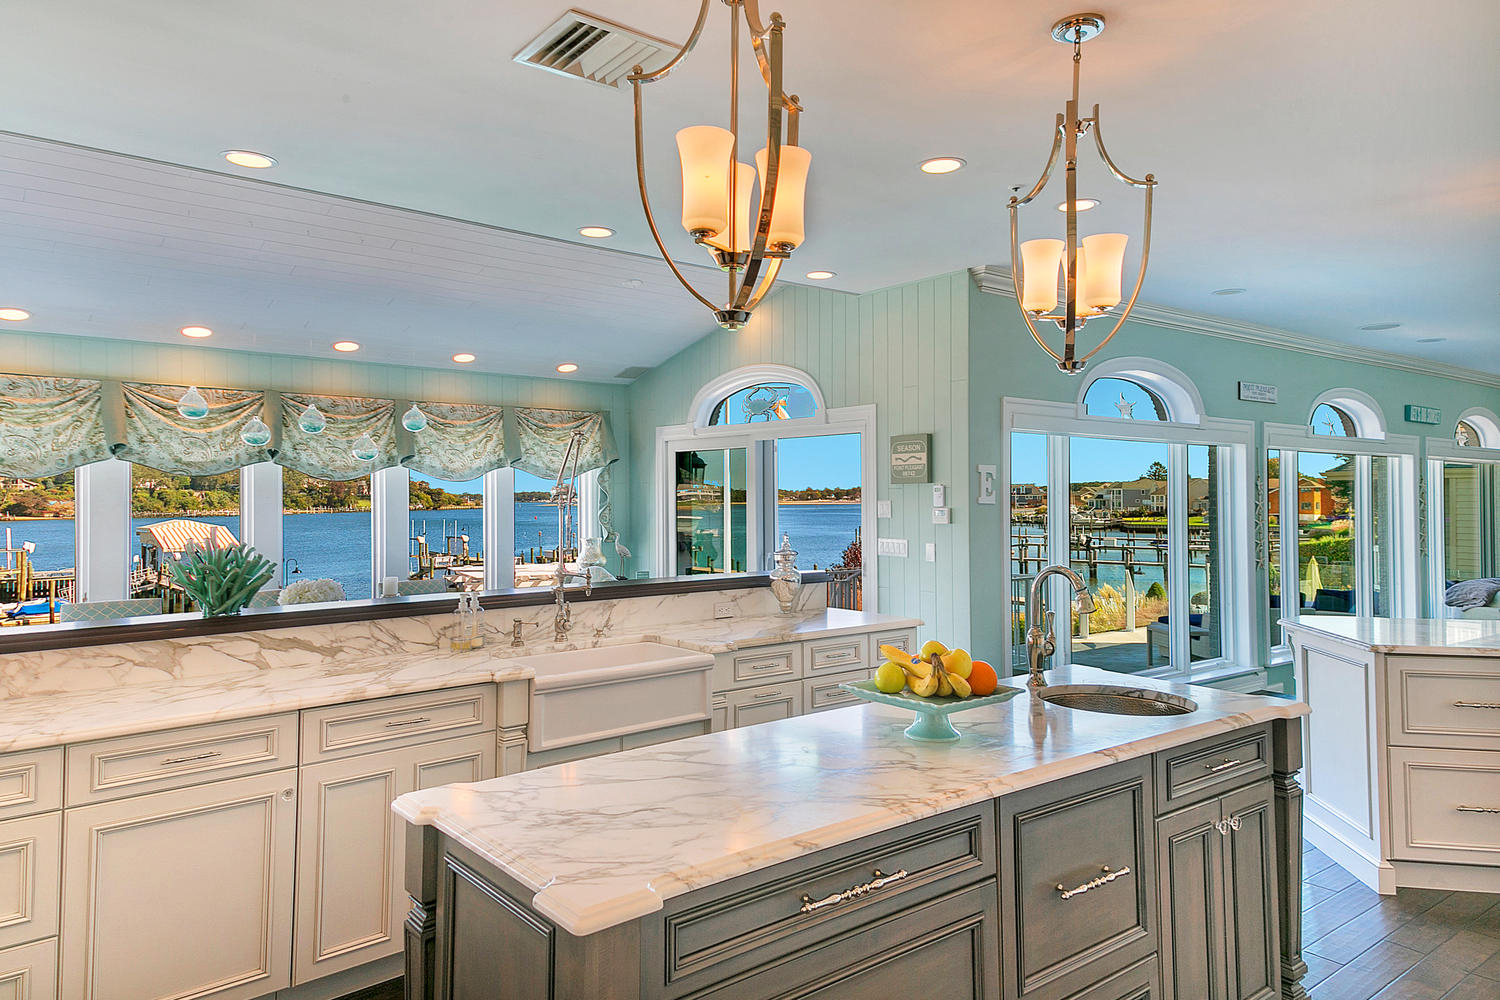 Custom Kitchens, Bathrooms and more at Design Line Kitchens in Sea ...